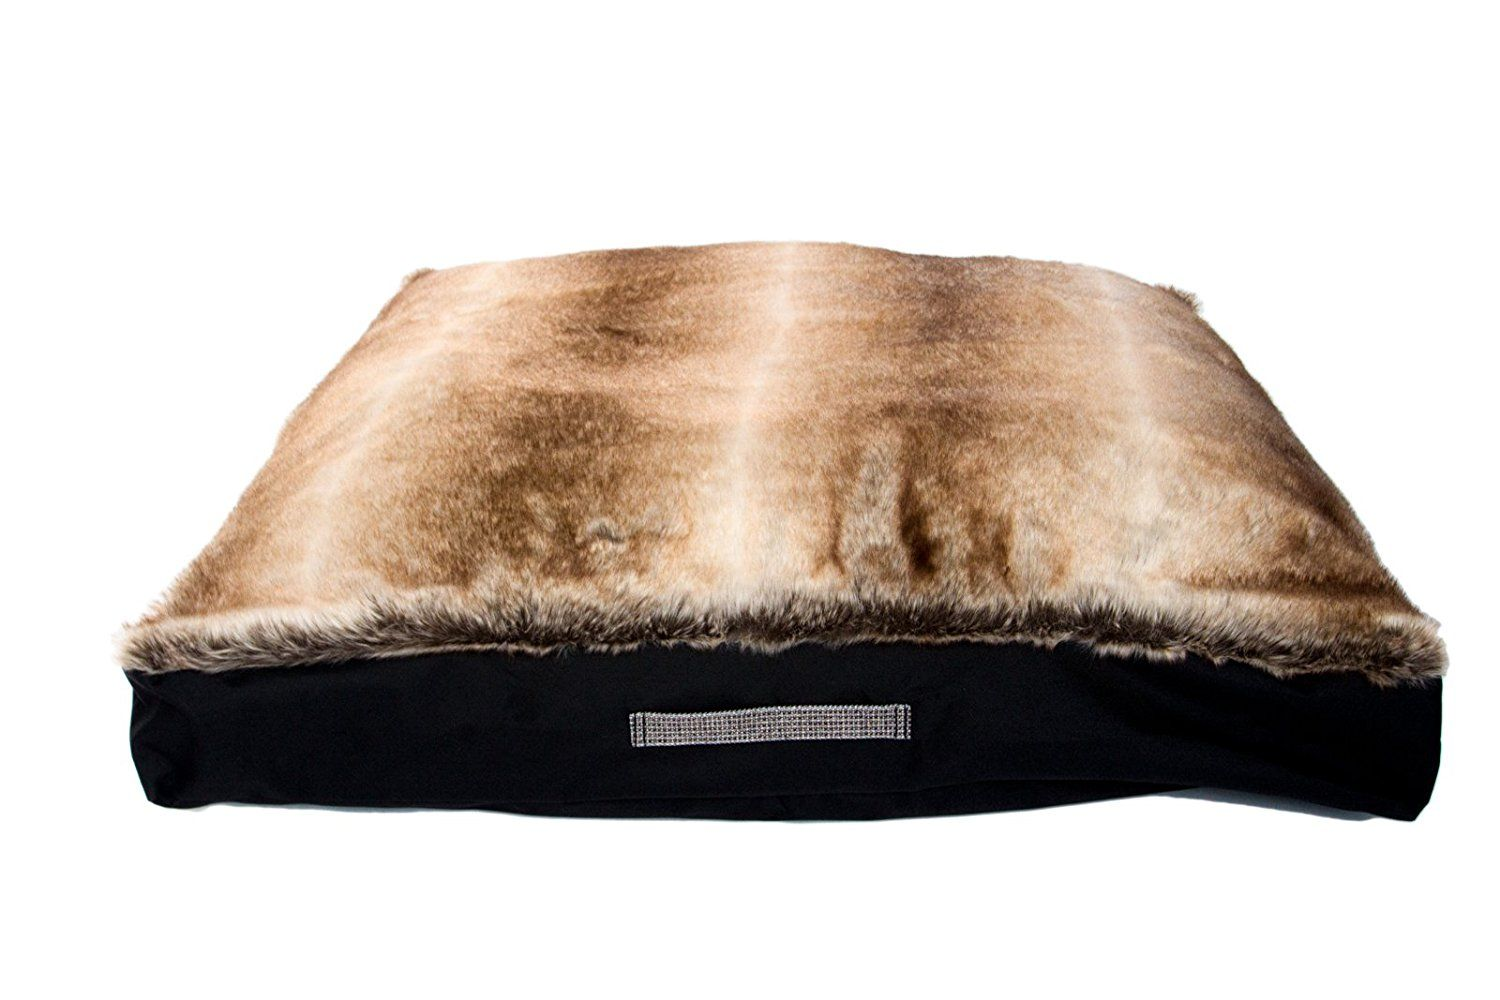 Dog Bed Luxurious Faux Fur, Brown Shell, Washable, Durable